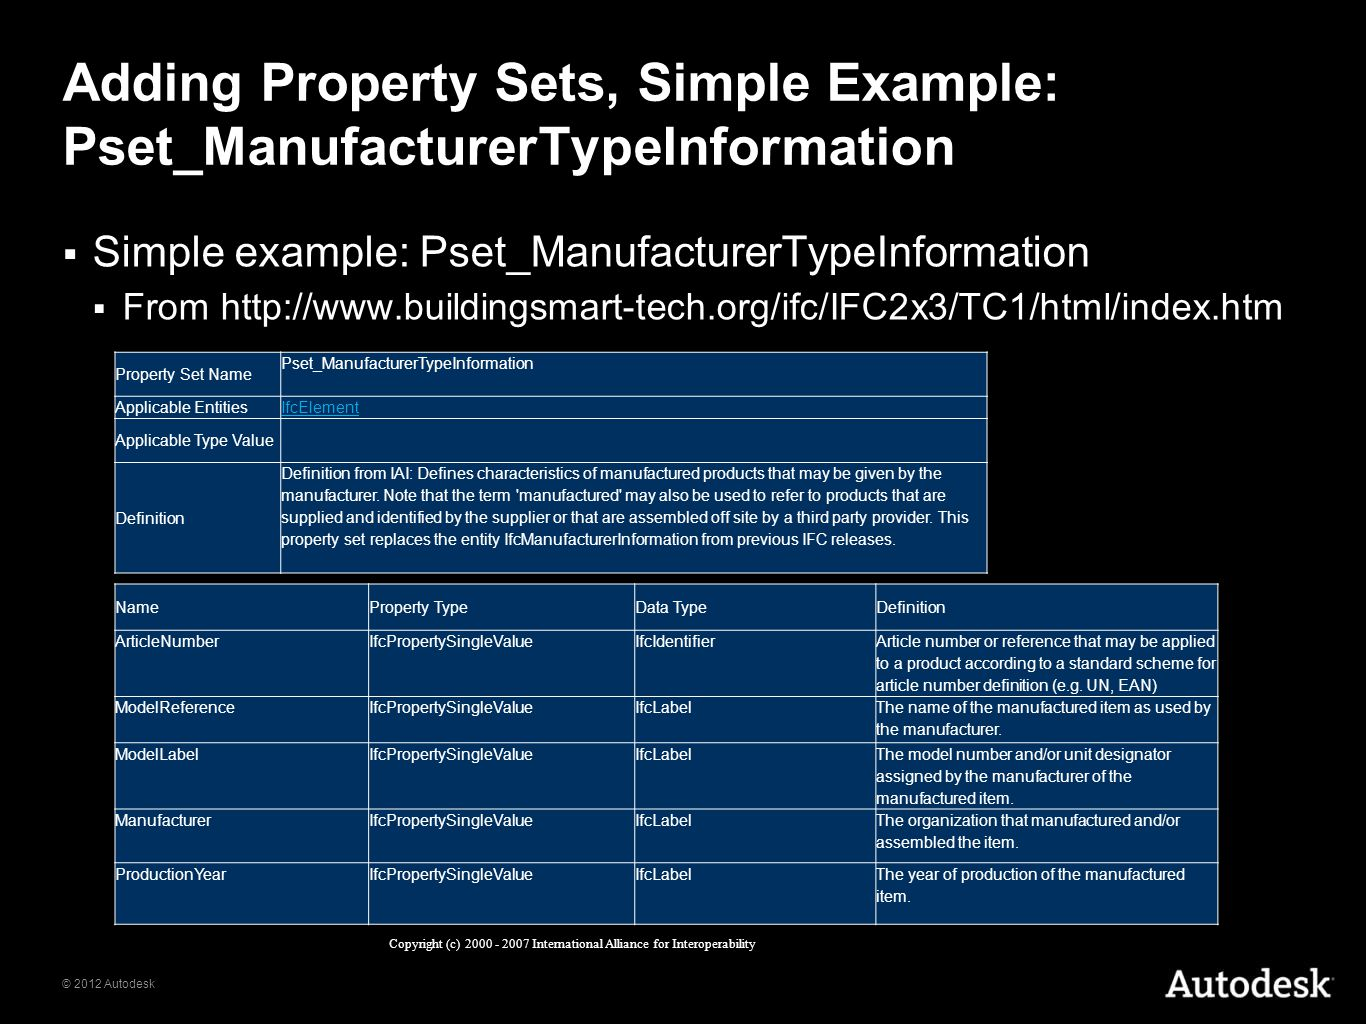 Adding Property Sets, Simple Example: Pset_ManufacturerTypeInformation